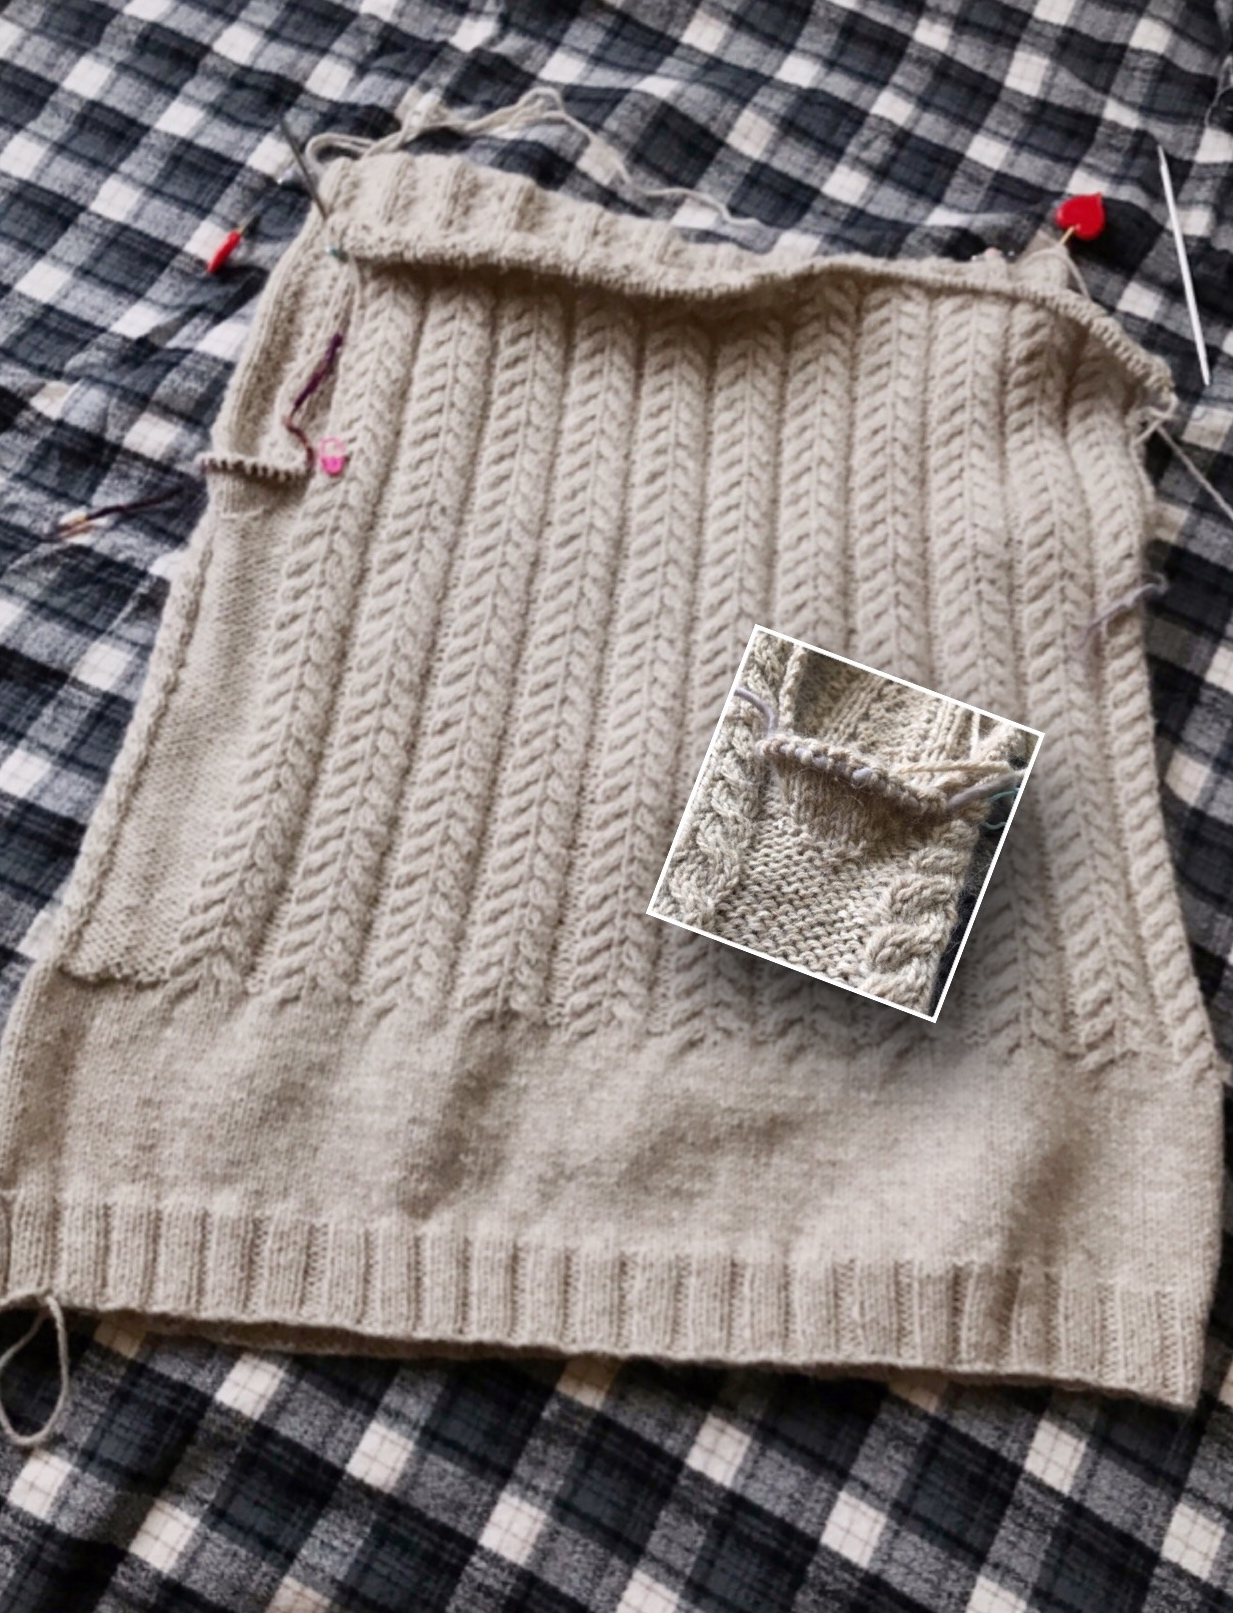 January Gansey - While I've knit both the front and back of the January Gansey to the point where they are joined via Russian grafting, I haven't had a moment to sit down, concentrate, and try this technique. I can do kitchener stitch in my sleep, but Russian grafting is new to me!